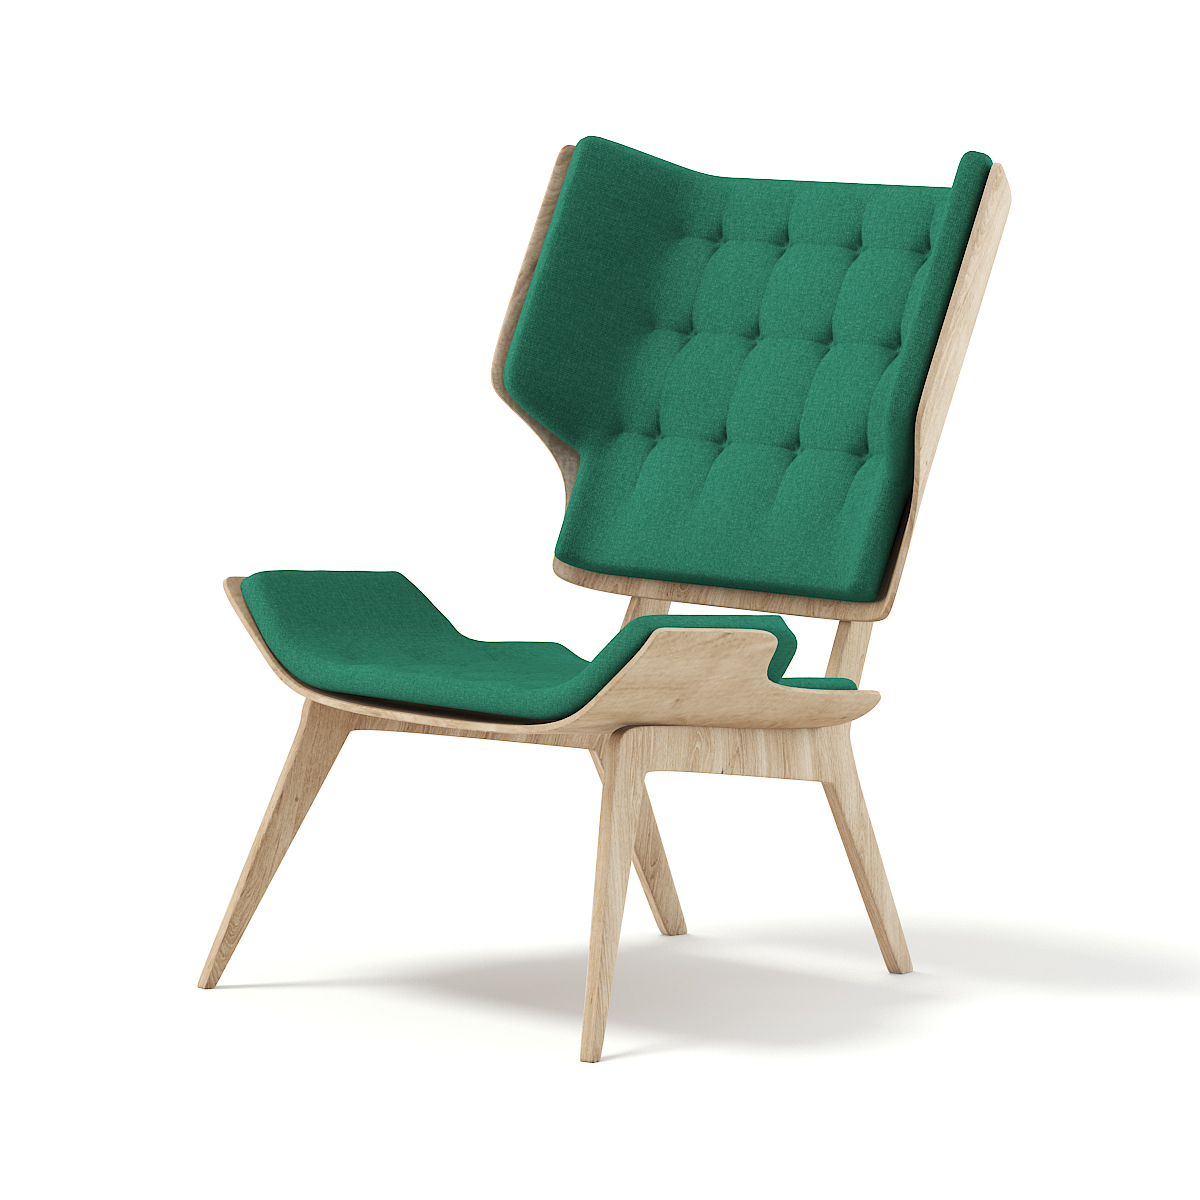 Wooden Chair with Green Seat 3D Model